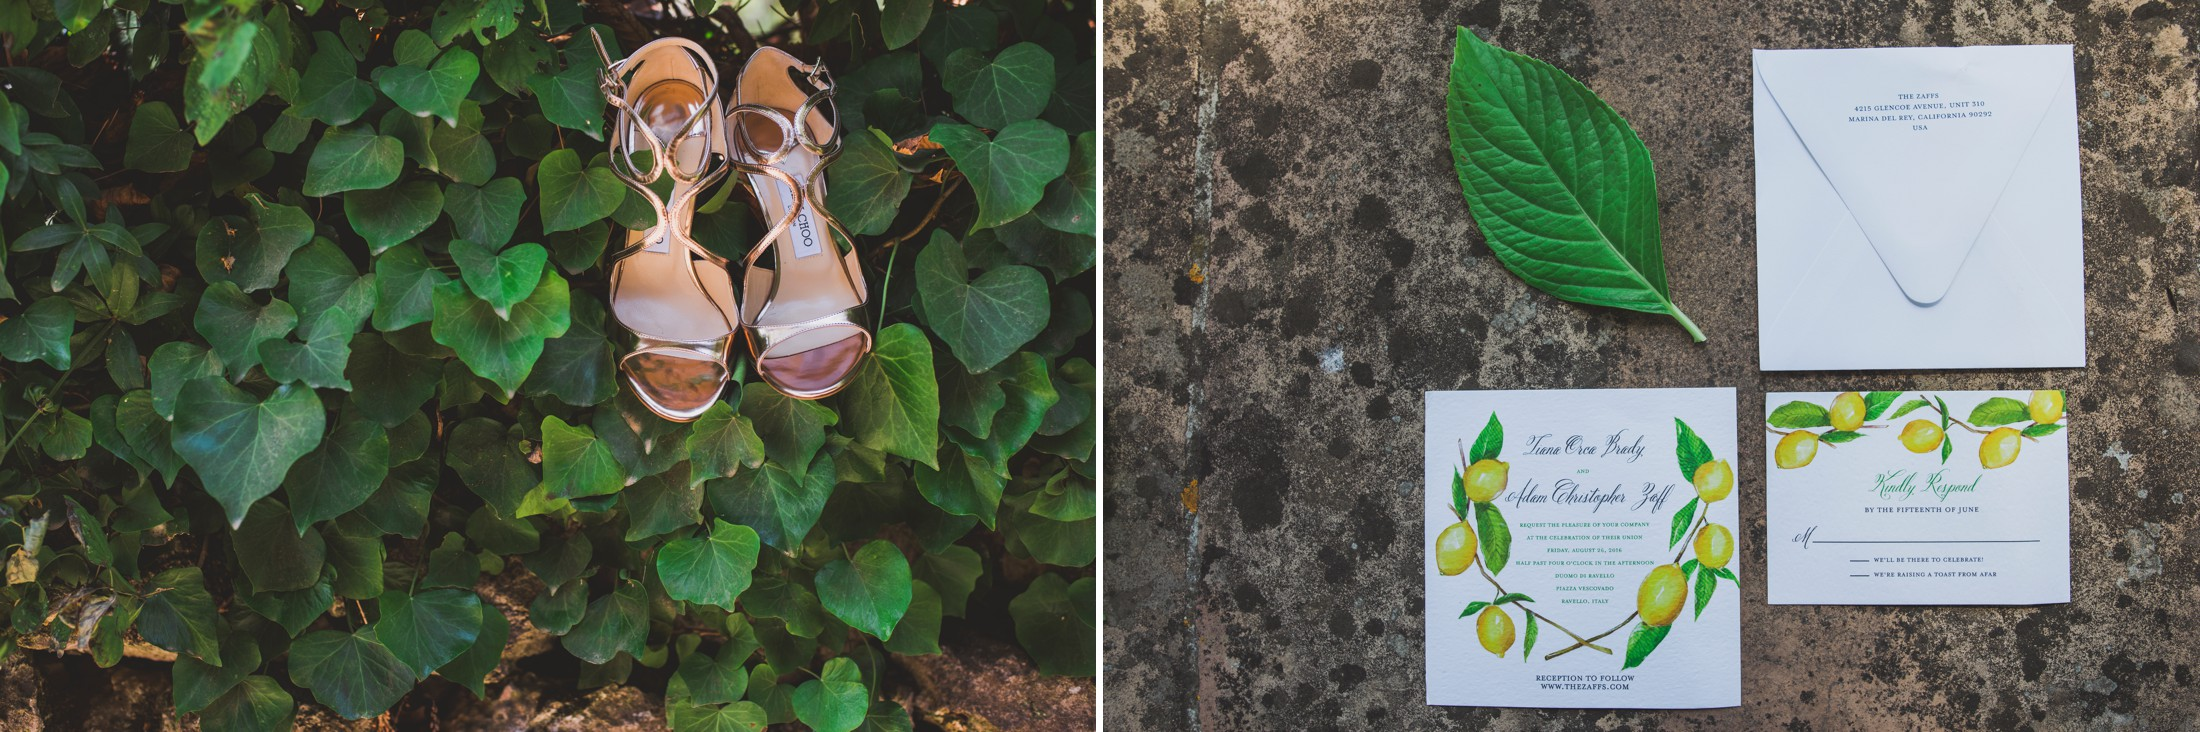 collage wedding detail shoes and invitation cards